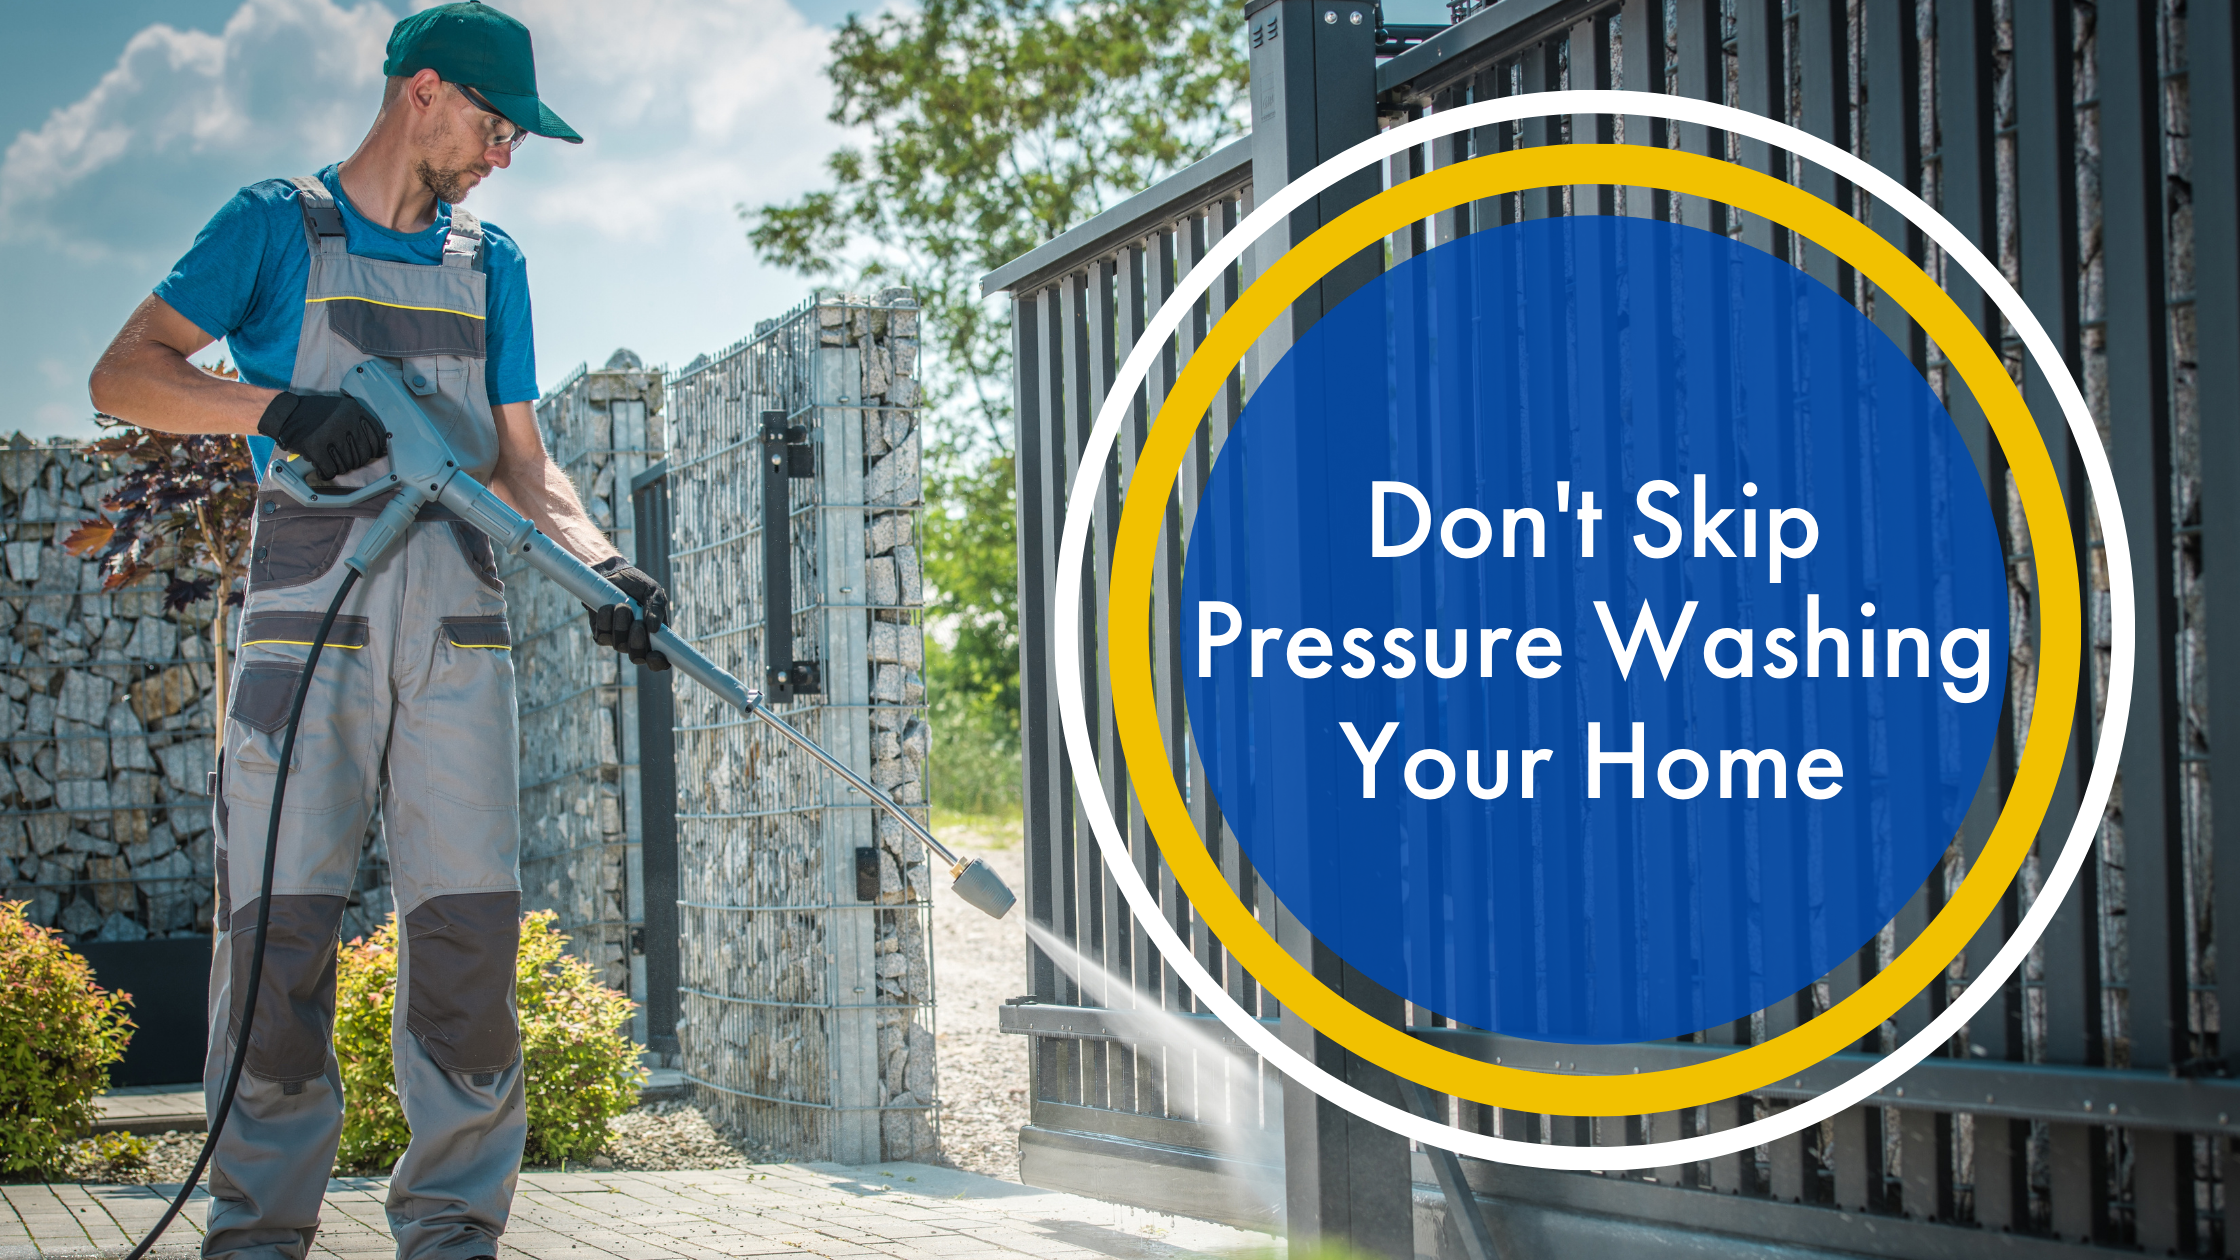 Don't Skip Pressure Washing Your Home